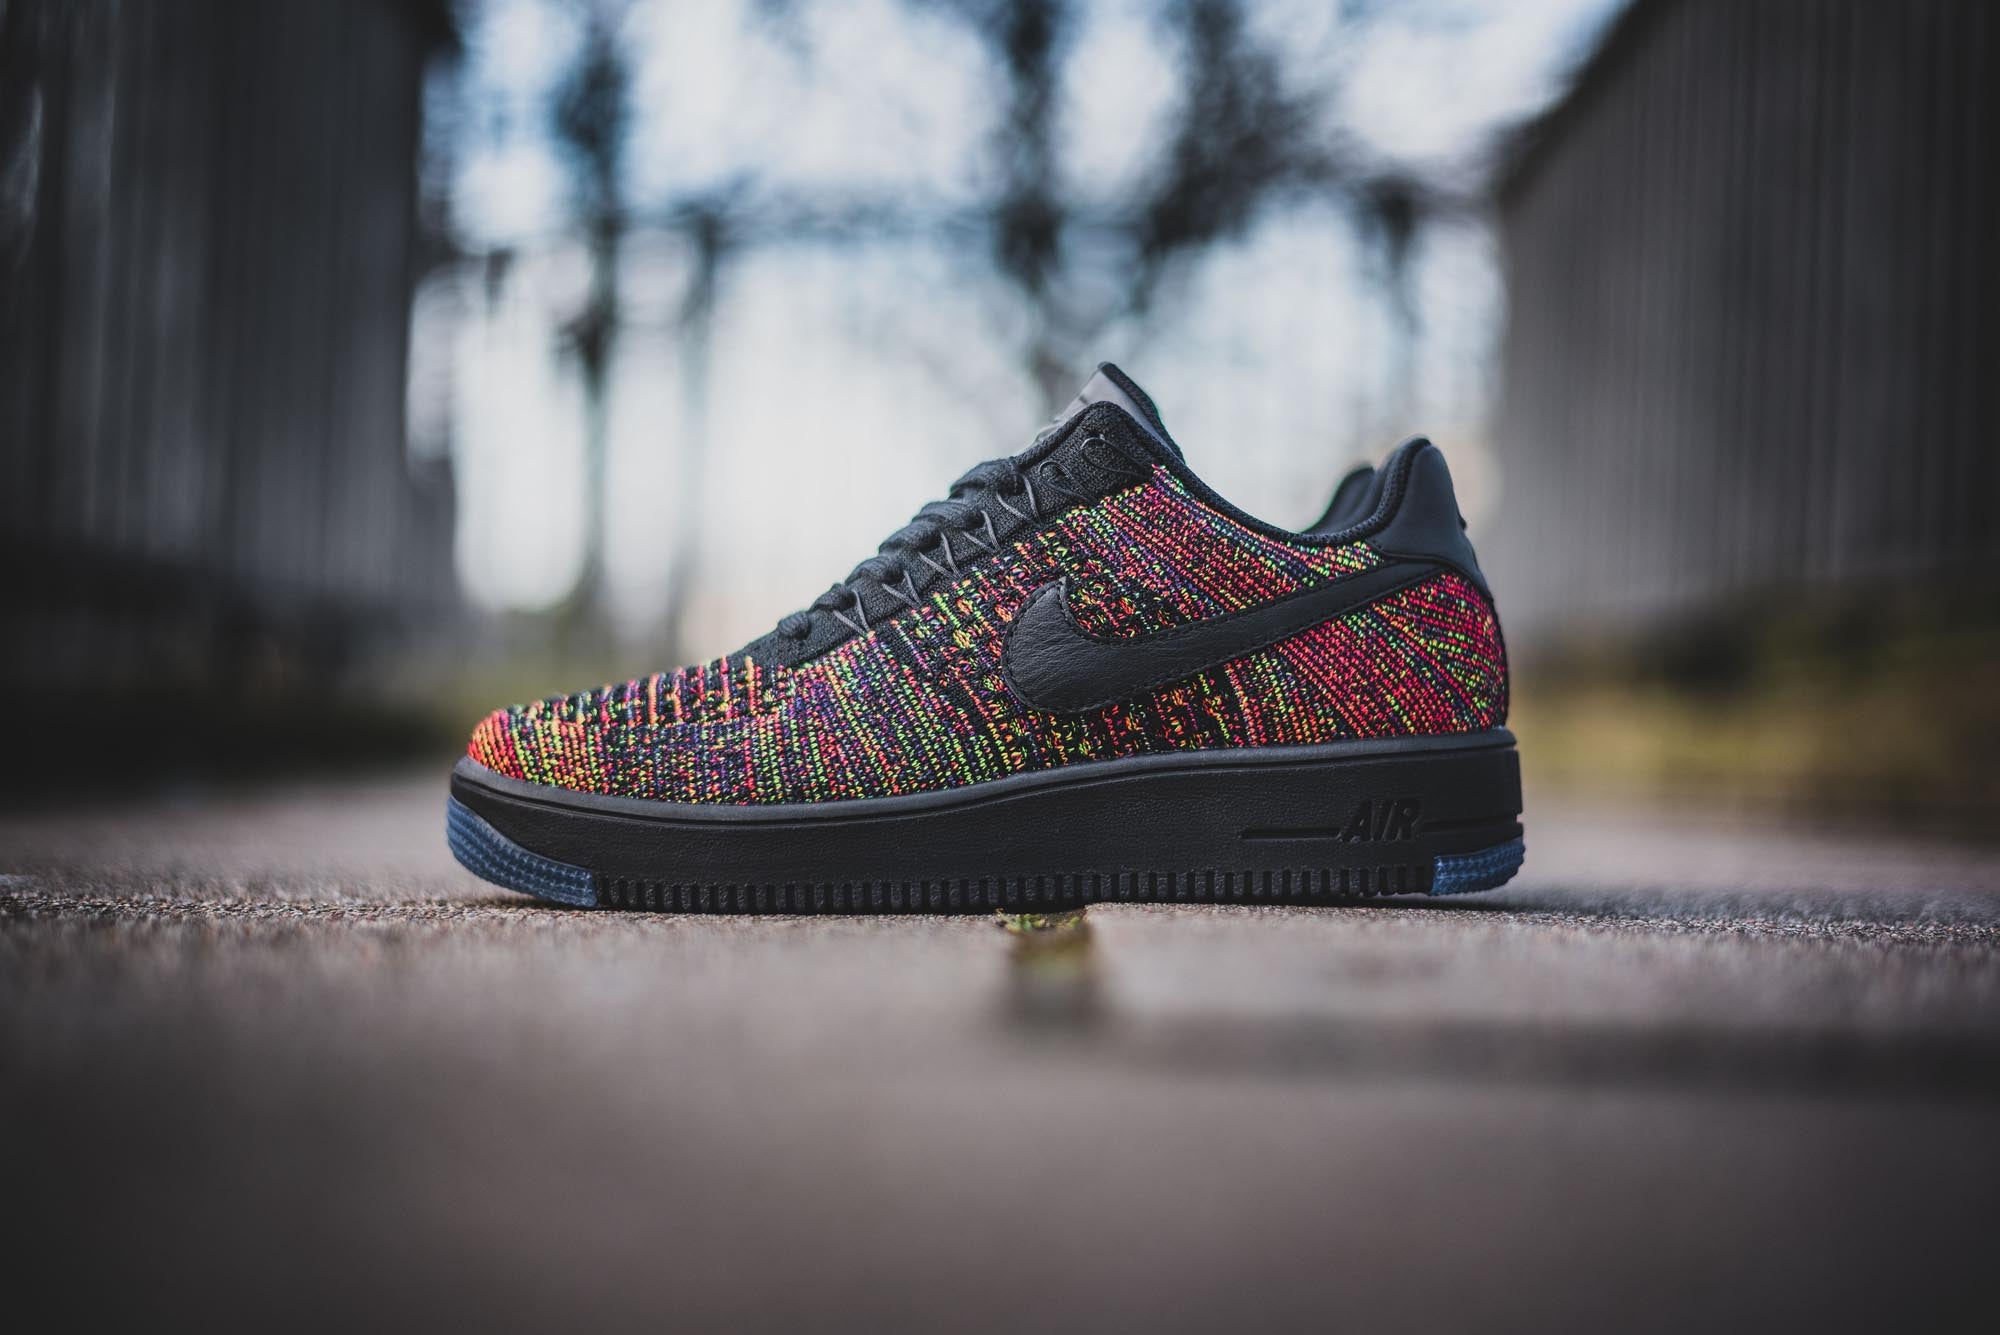 Nike Air Force 1 Flyknit Low 01